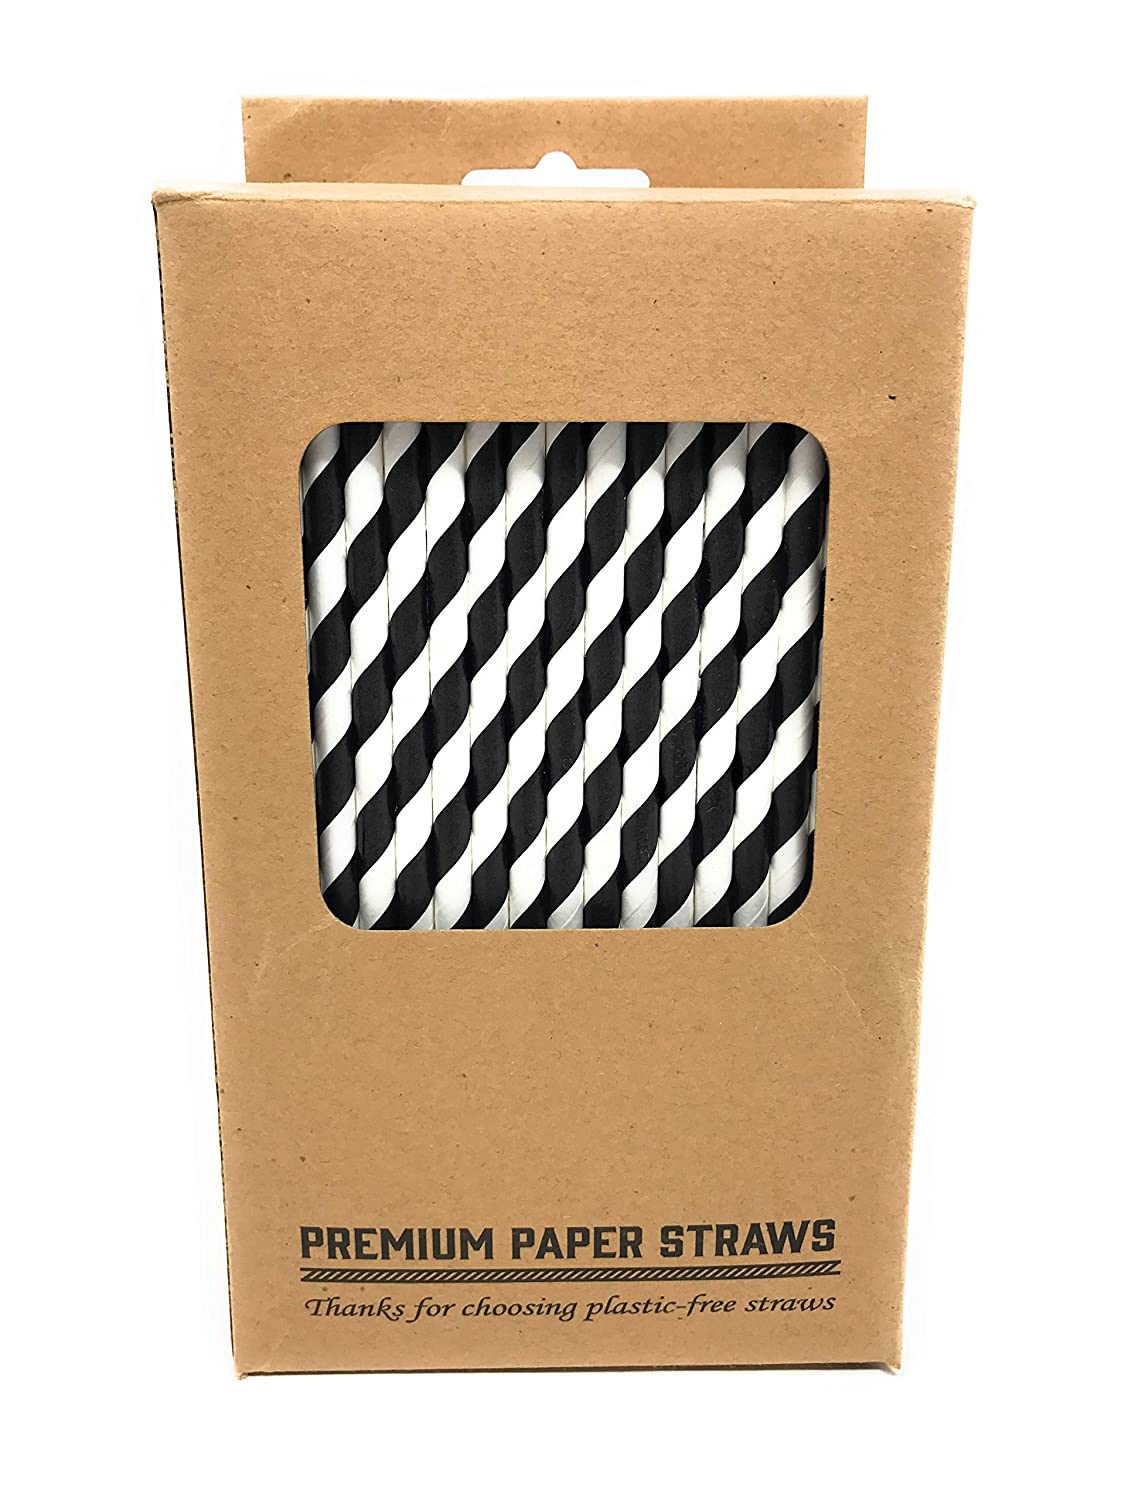 Cannucce di carta premium 200 Black and White Striped Incensu